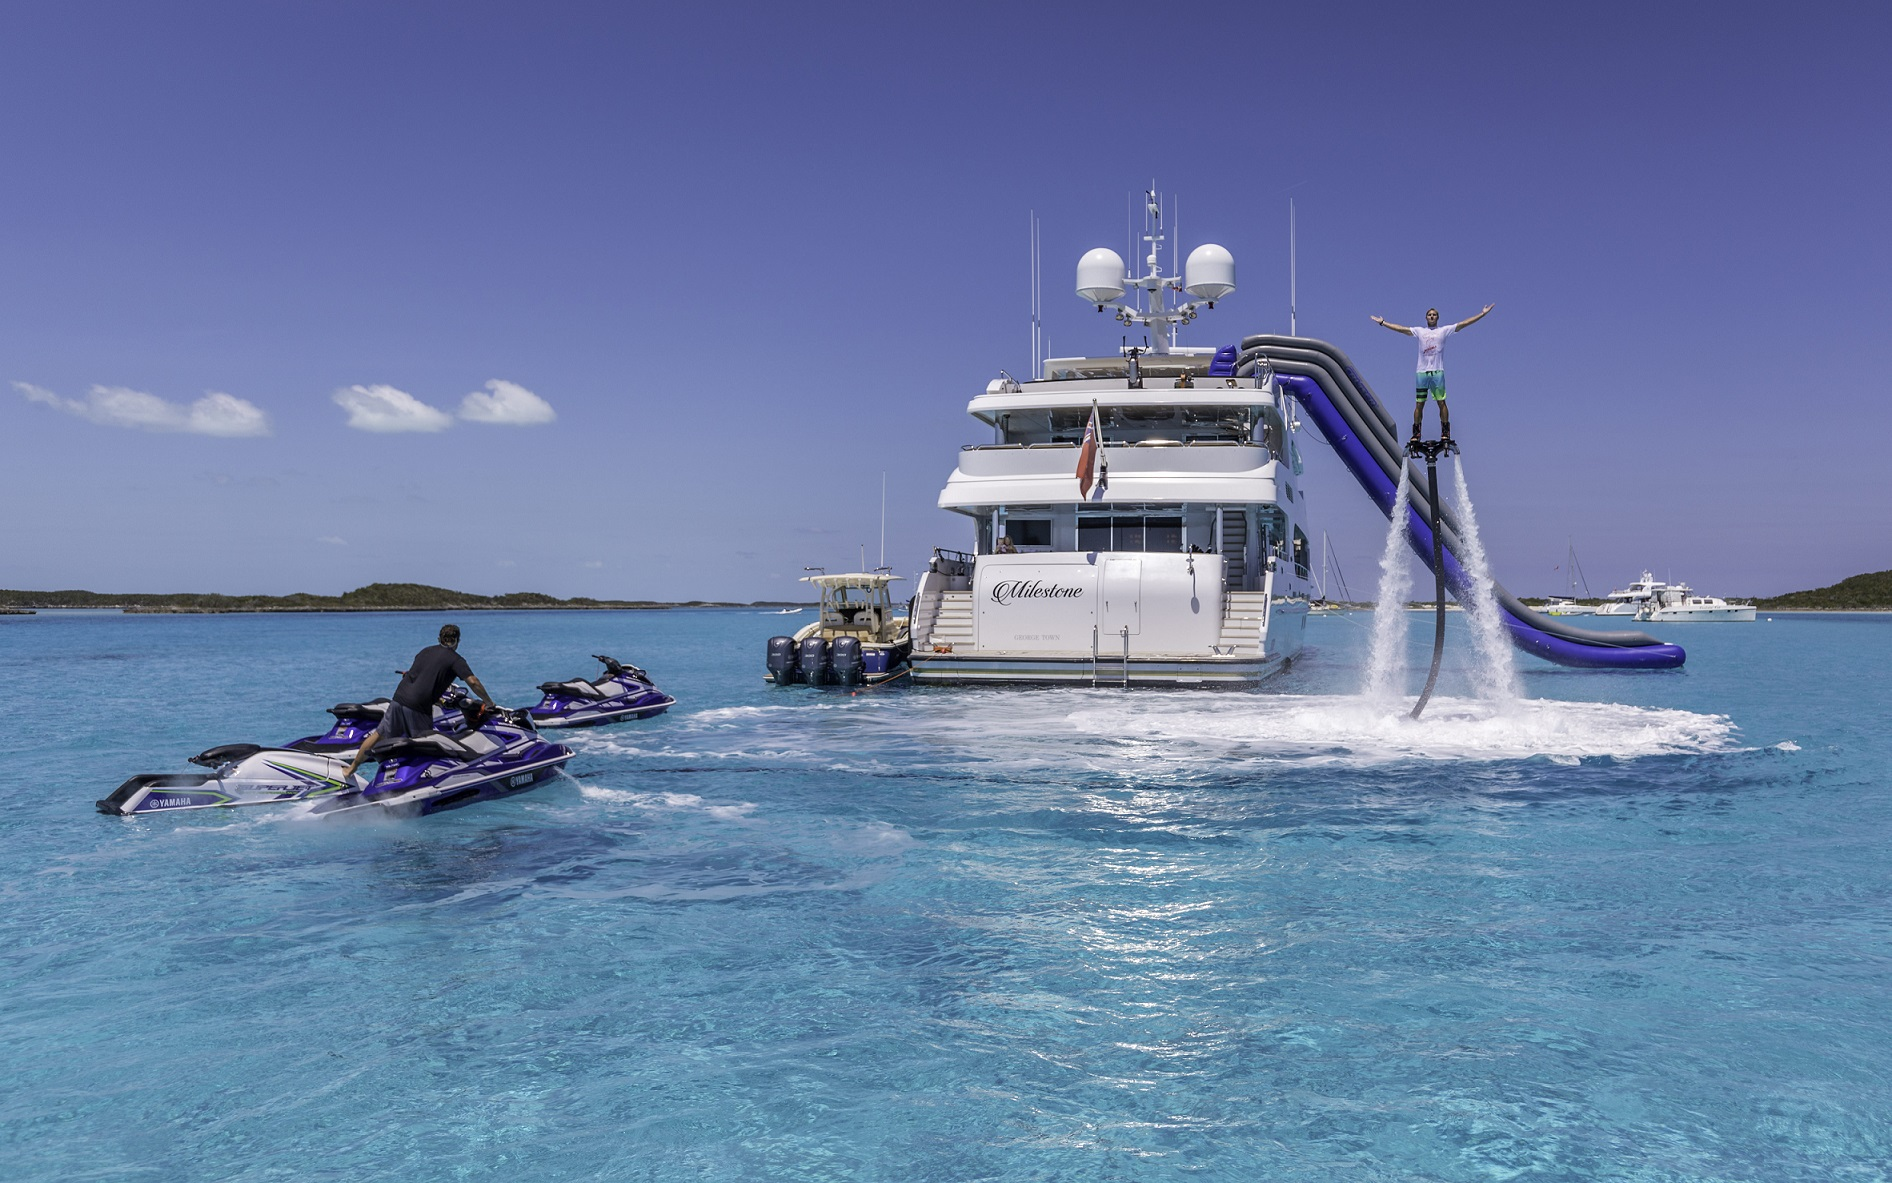 jet skis m/y milestone for charter